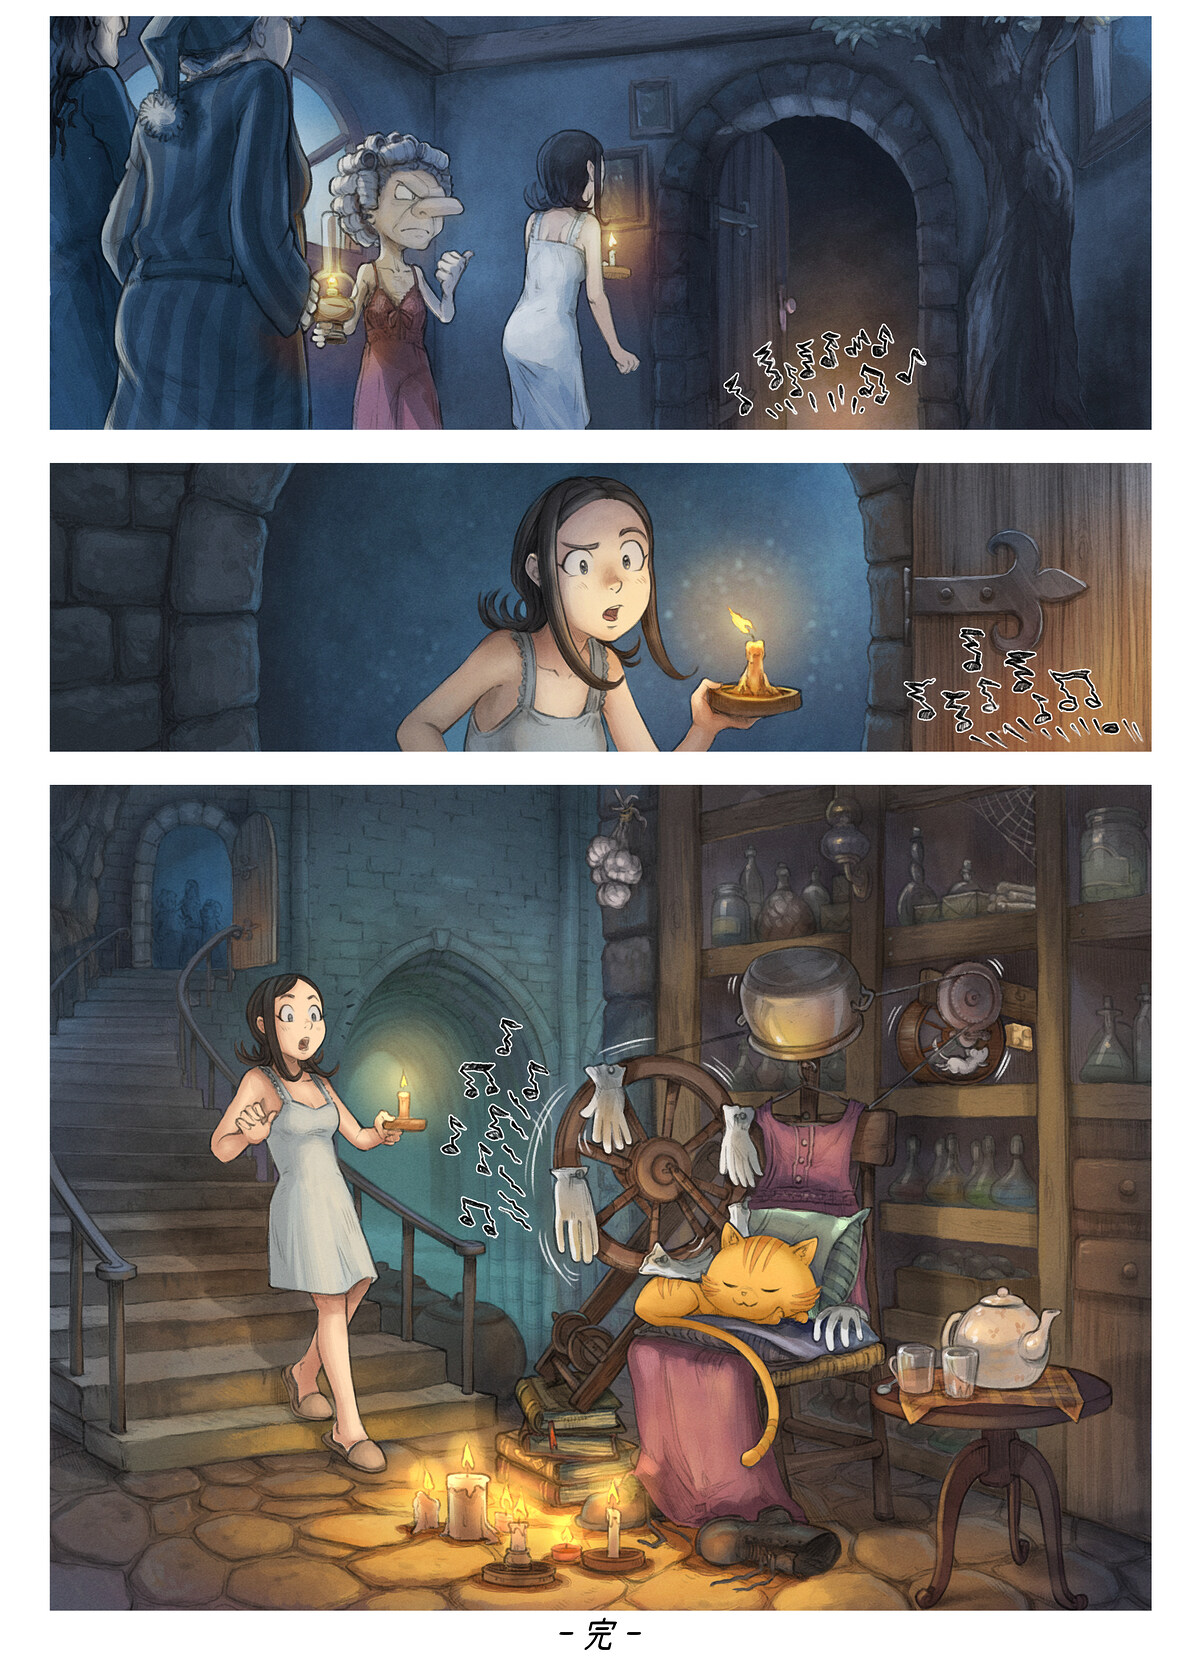 A webcomic page of Pepper&Carrot, 漫画全集 30 [cn], 页面 6